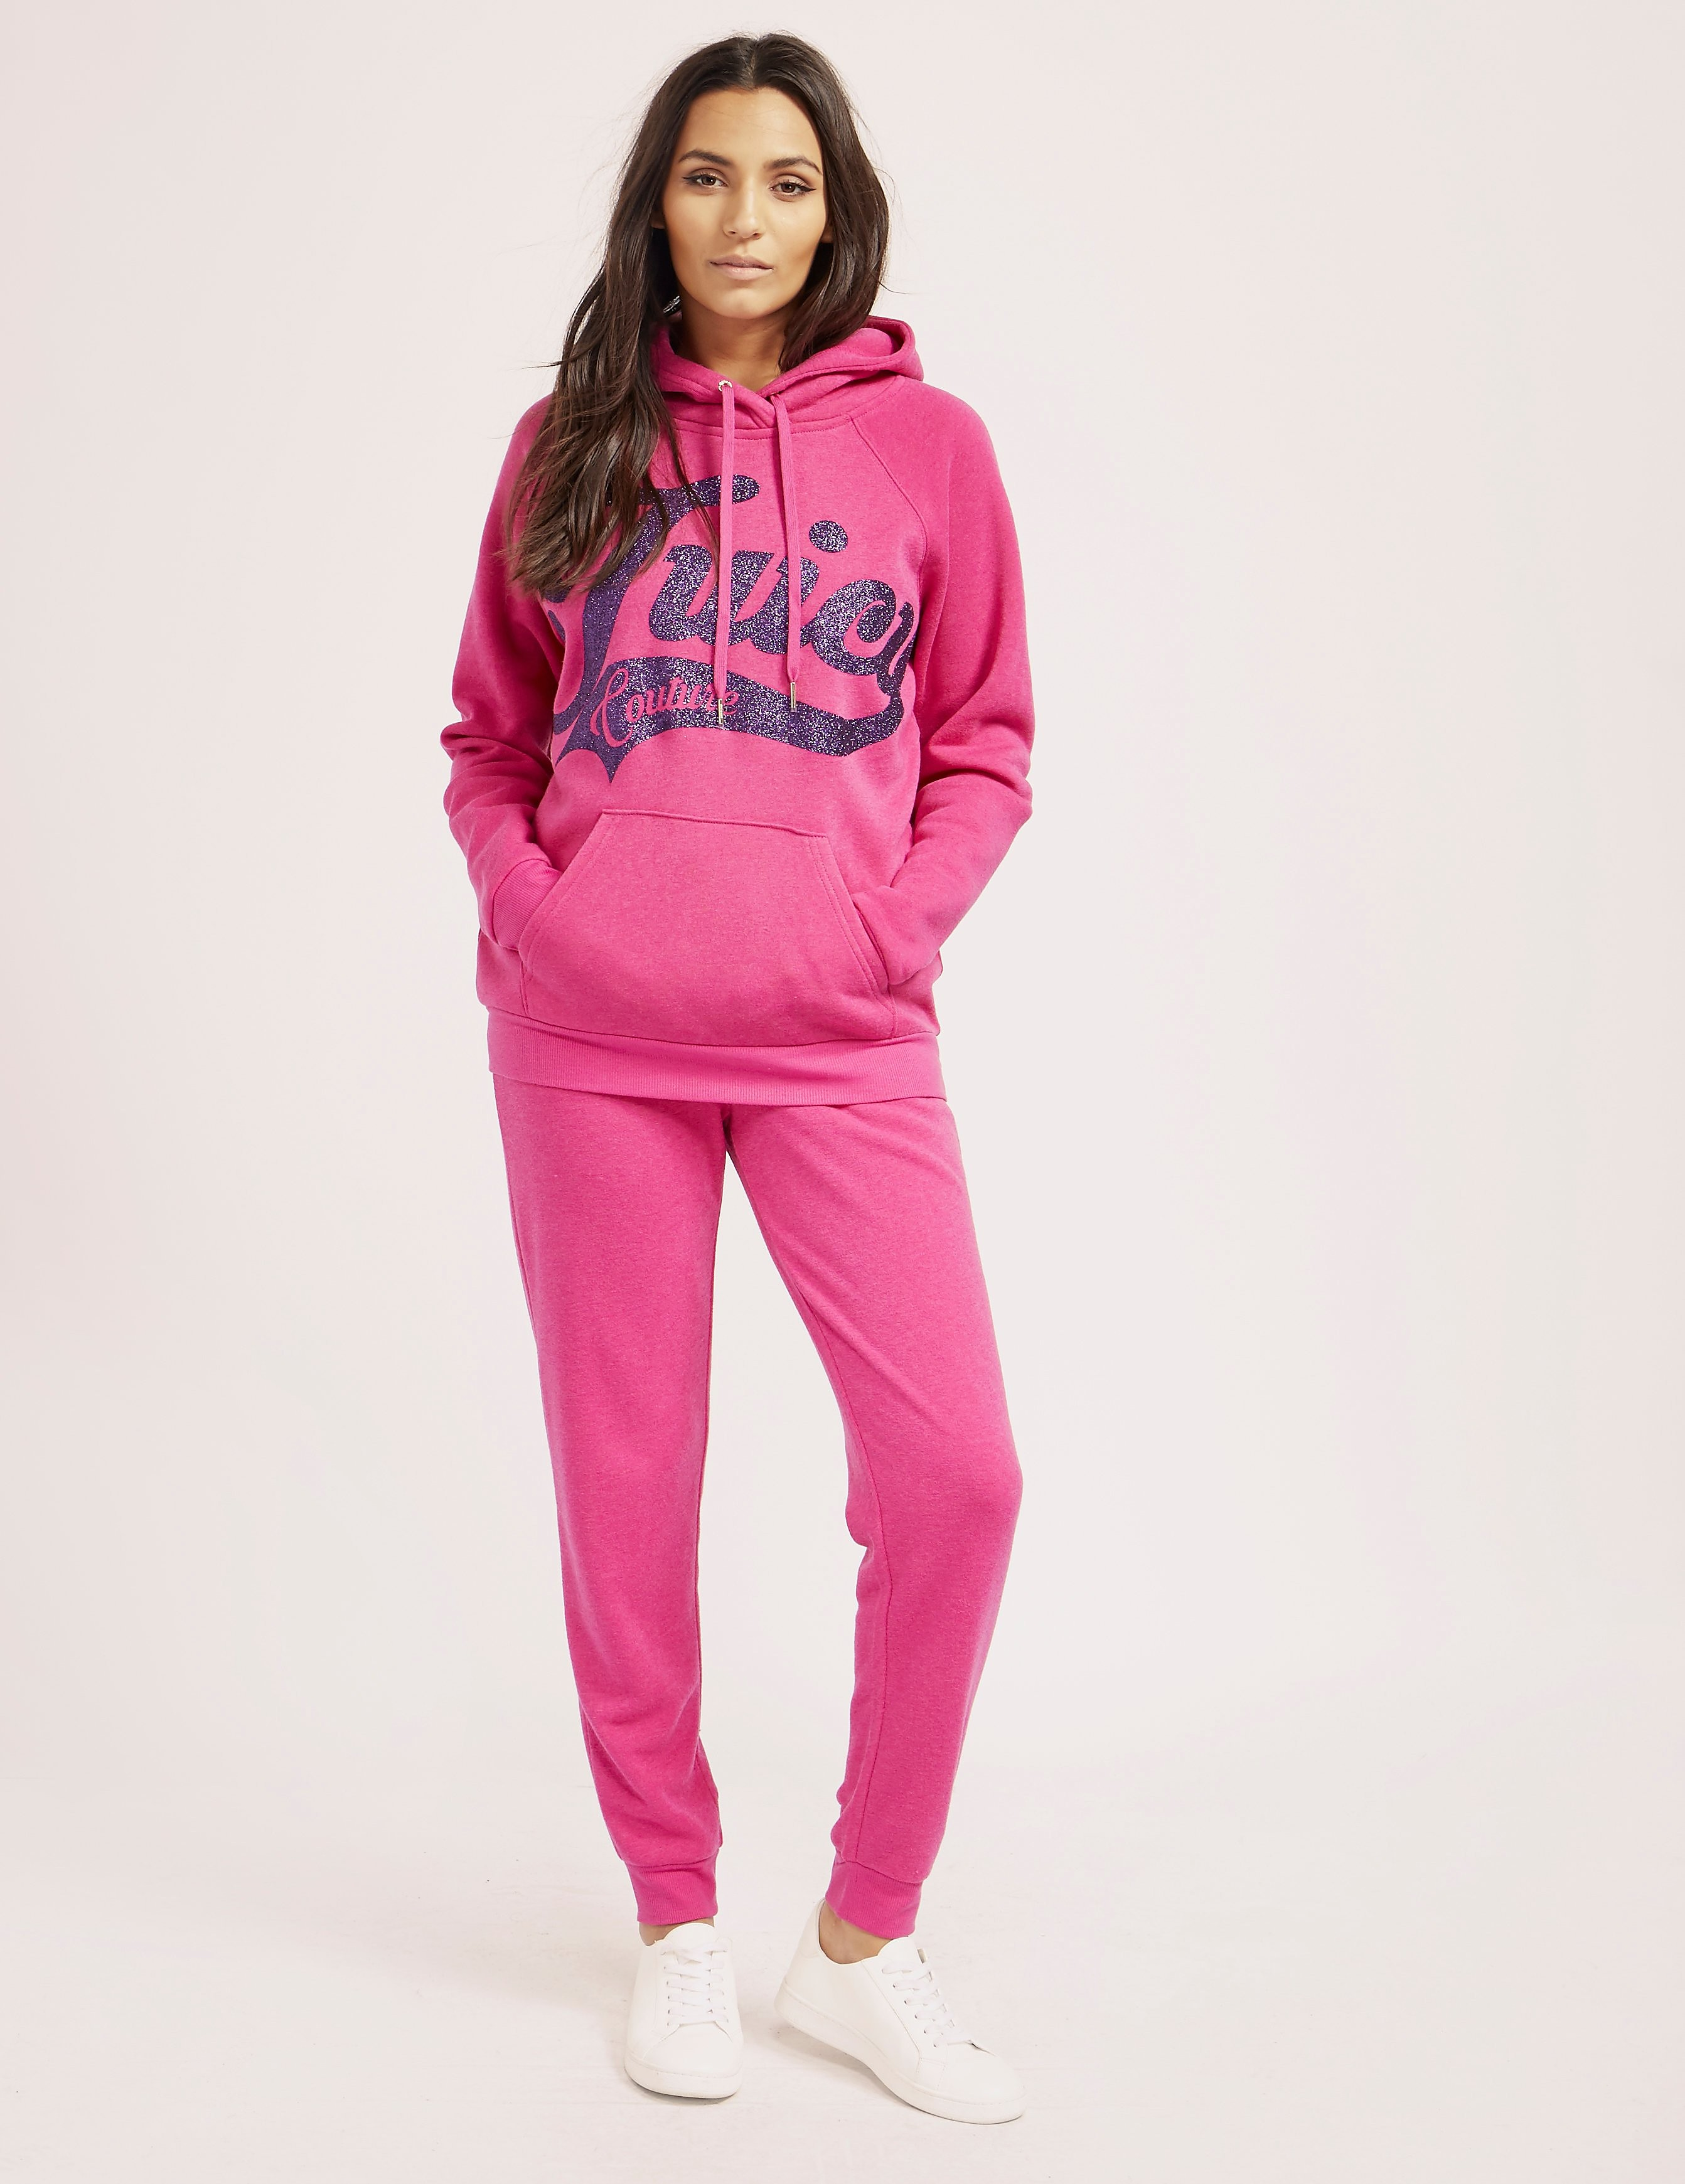 Juicy Couture Glitter Hoody